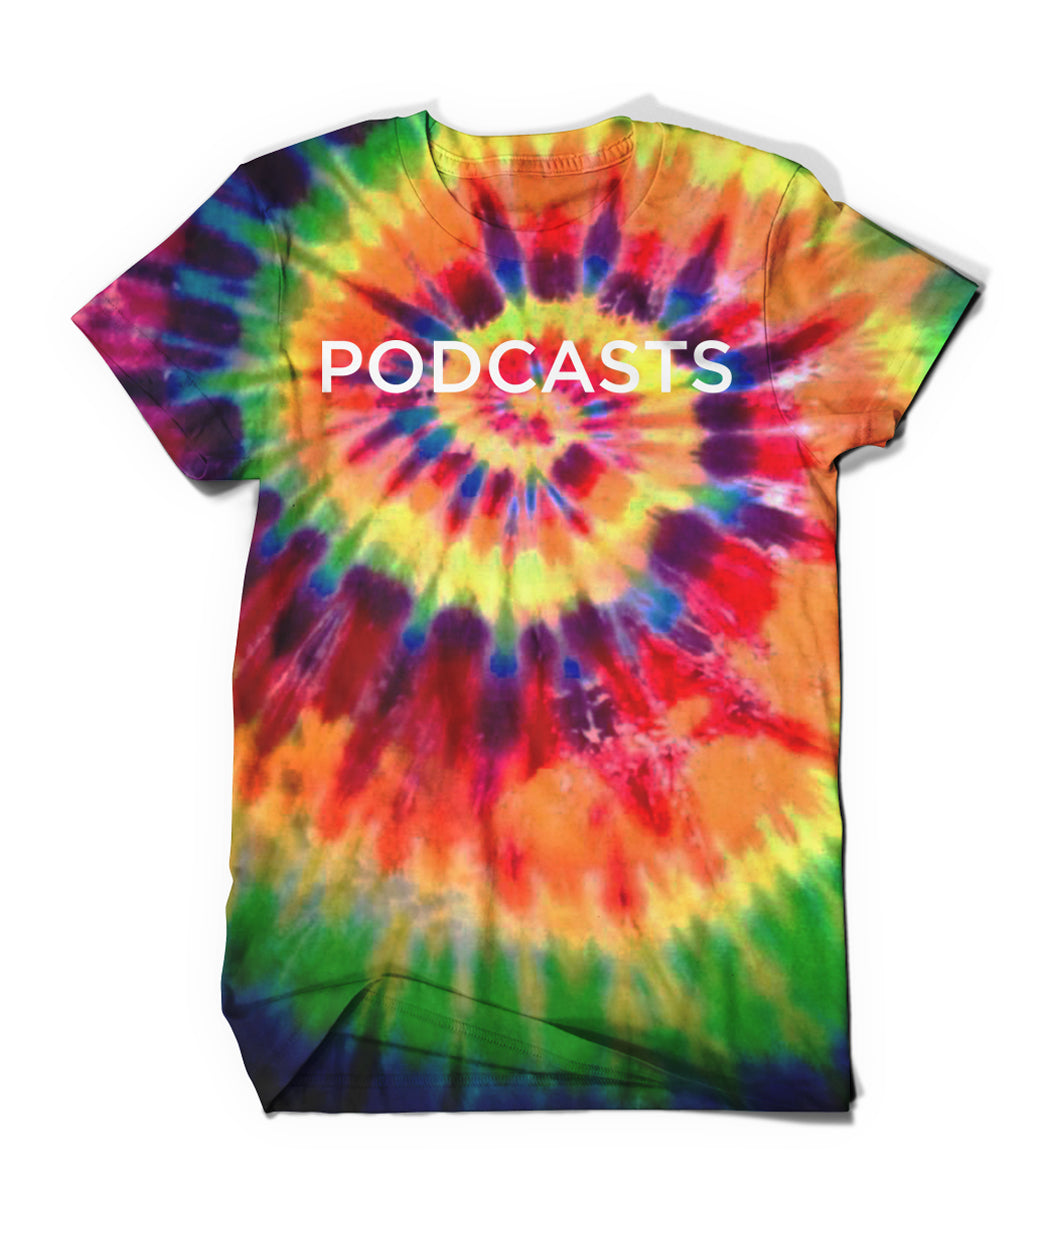 Podcasts Shirt